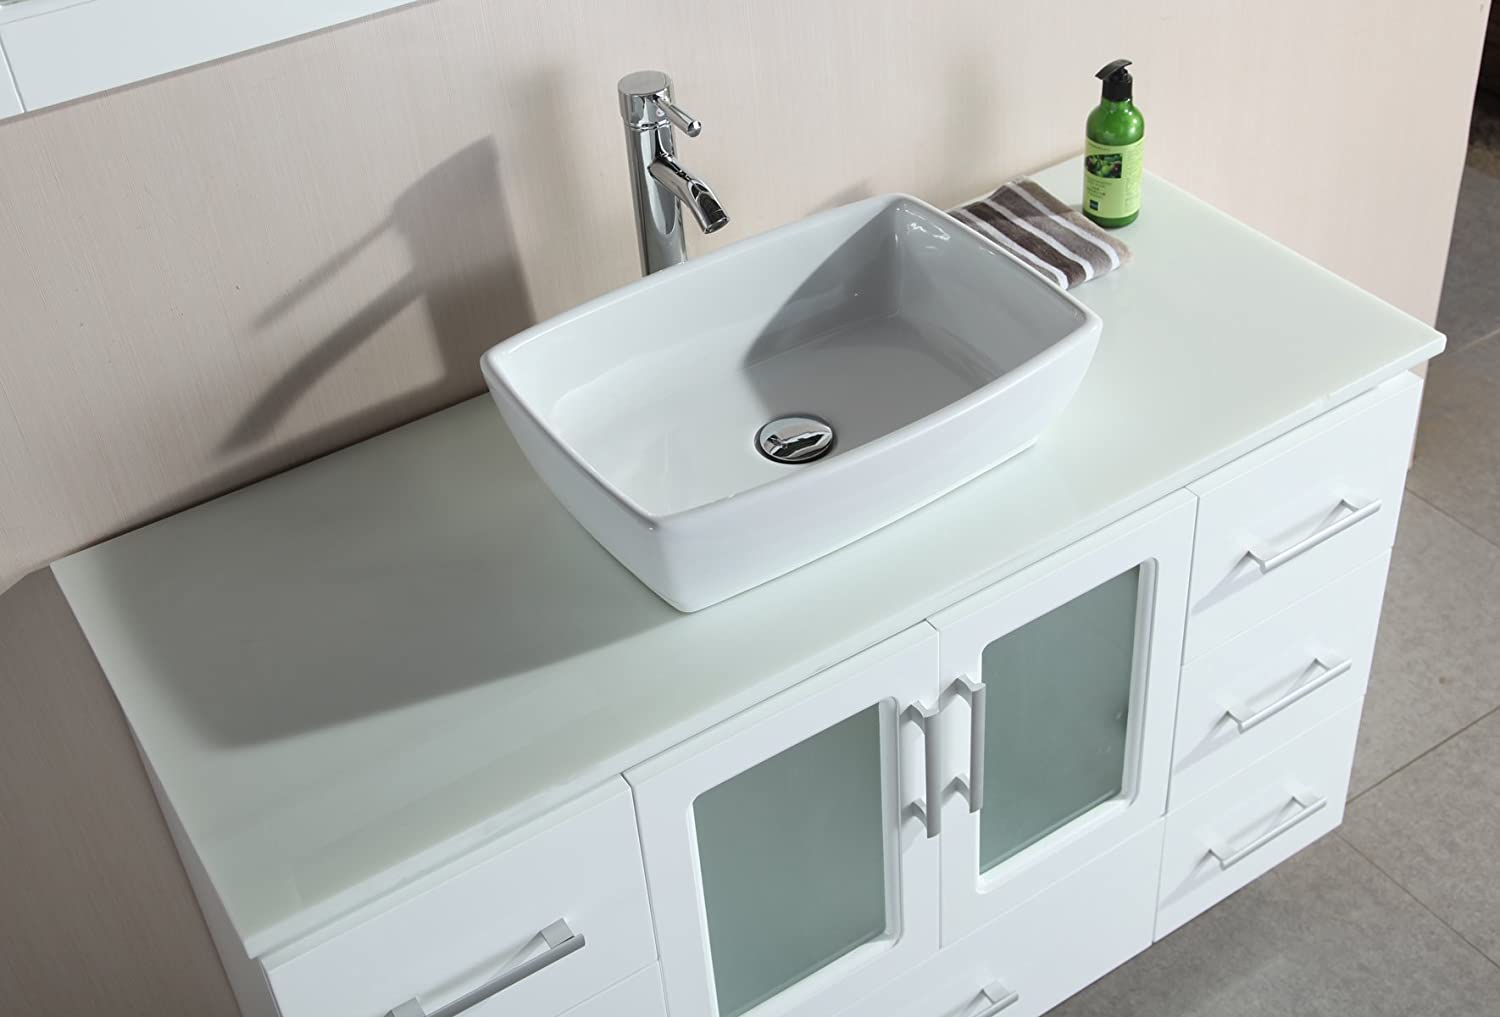 Bathroom available in 5 finishes vessel bathroom sinks msrp 425 - Design Element Stanton Single Vessel Sink Vanity Set With White Finish 48 Inch Amazon Com